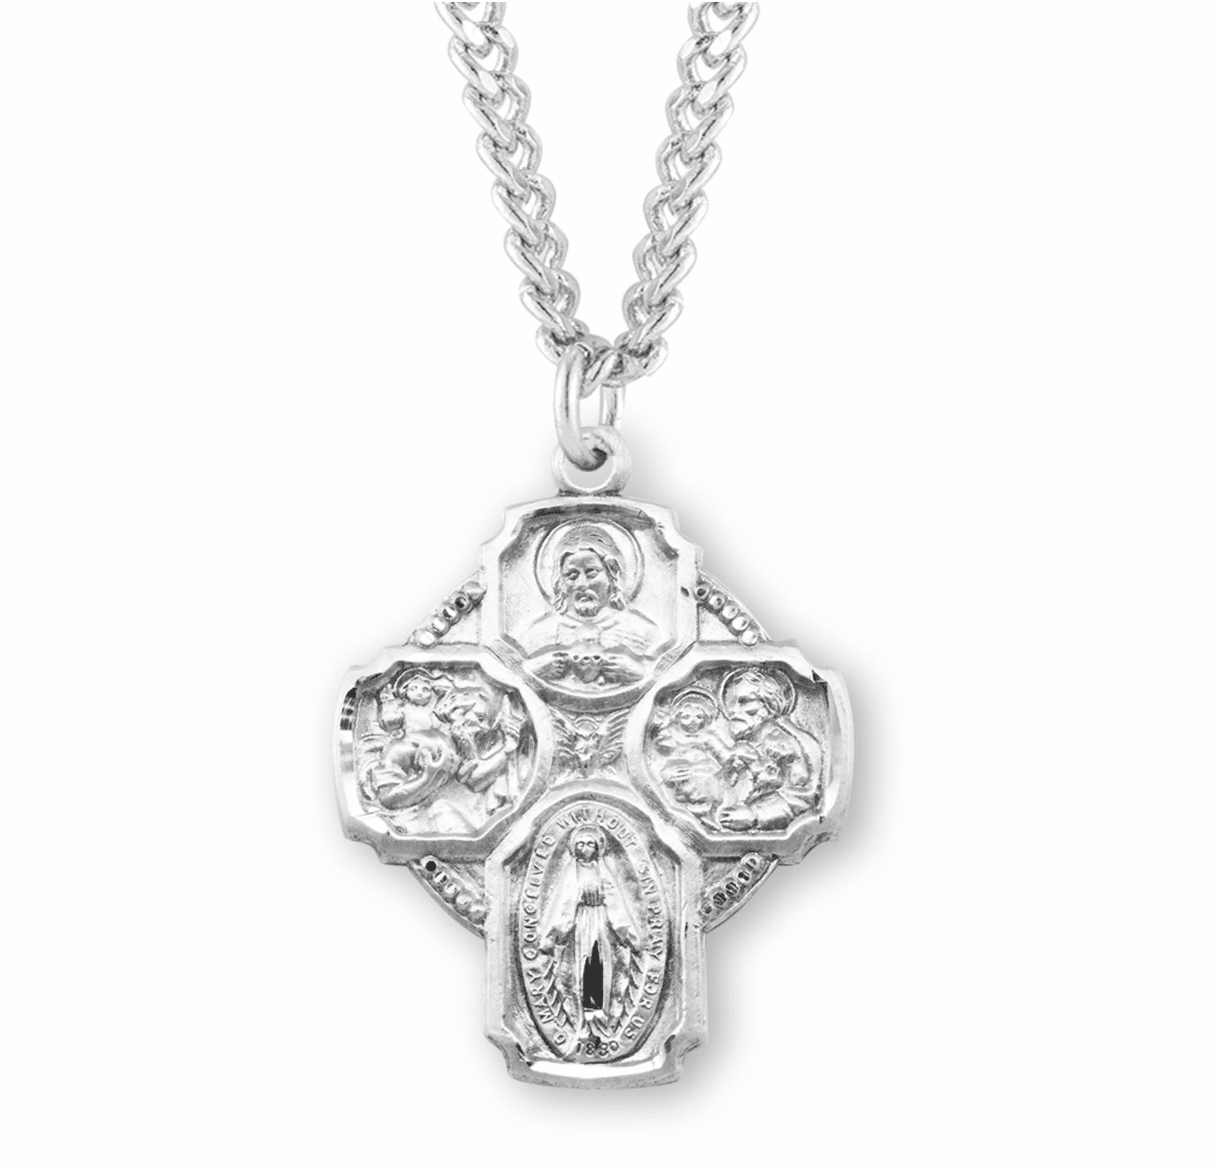 Beaded 4-Way Cross w/Doves Medal Necklace by HMH Religious